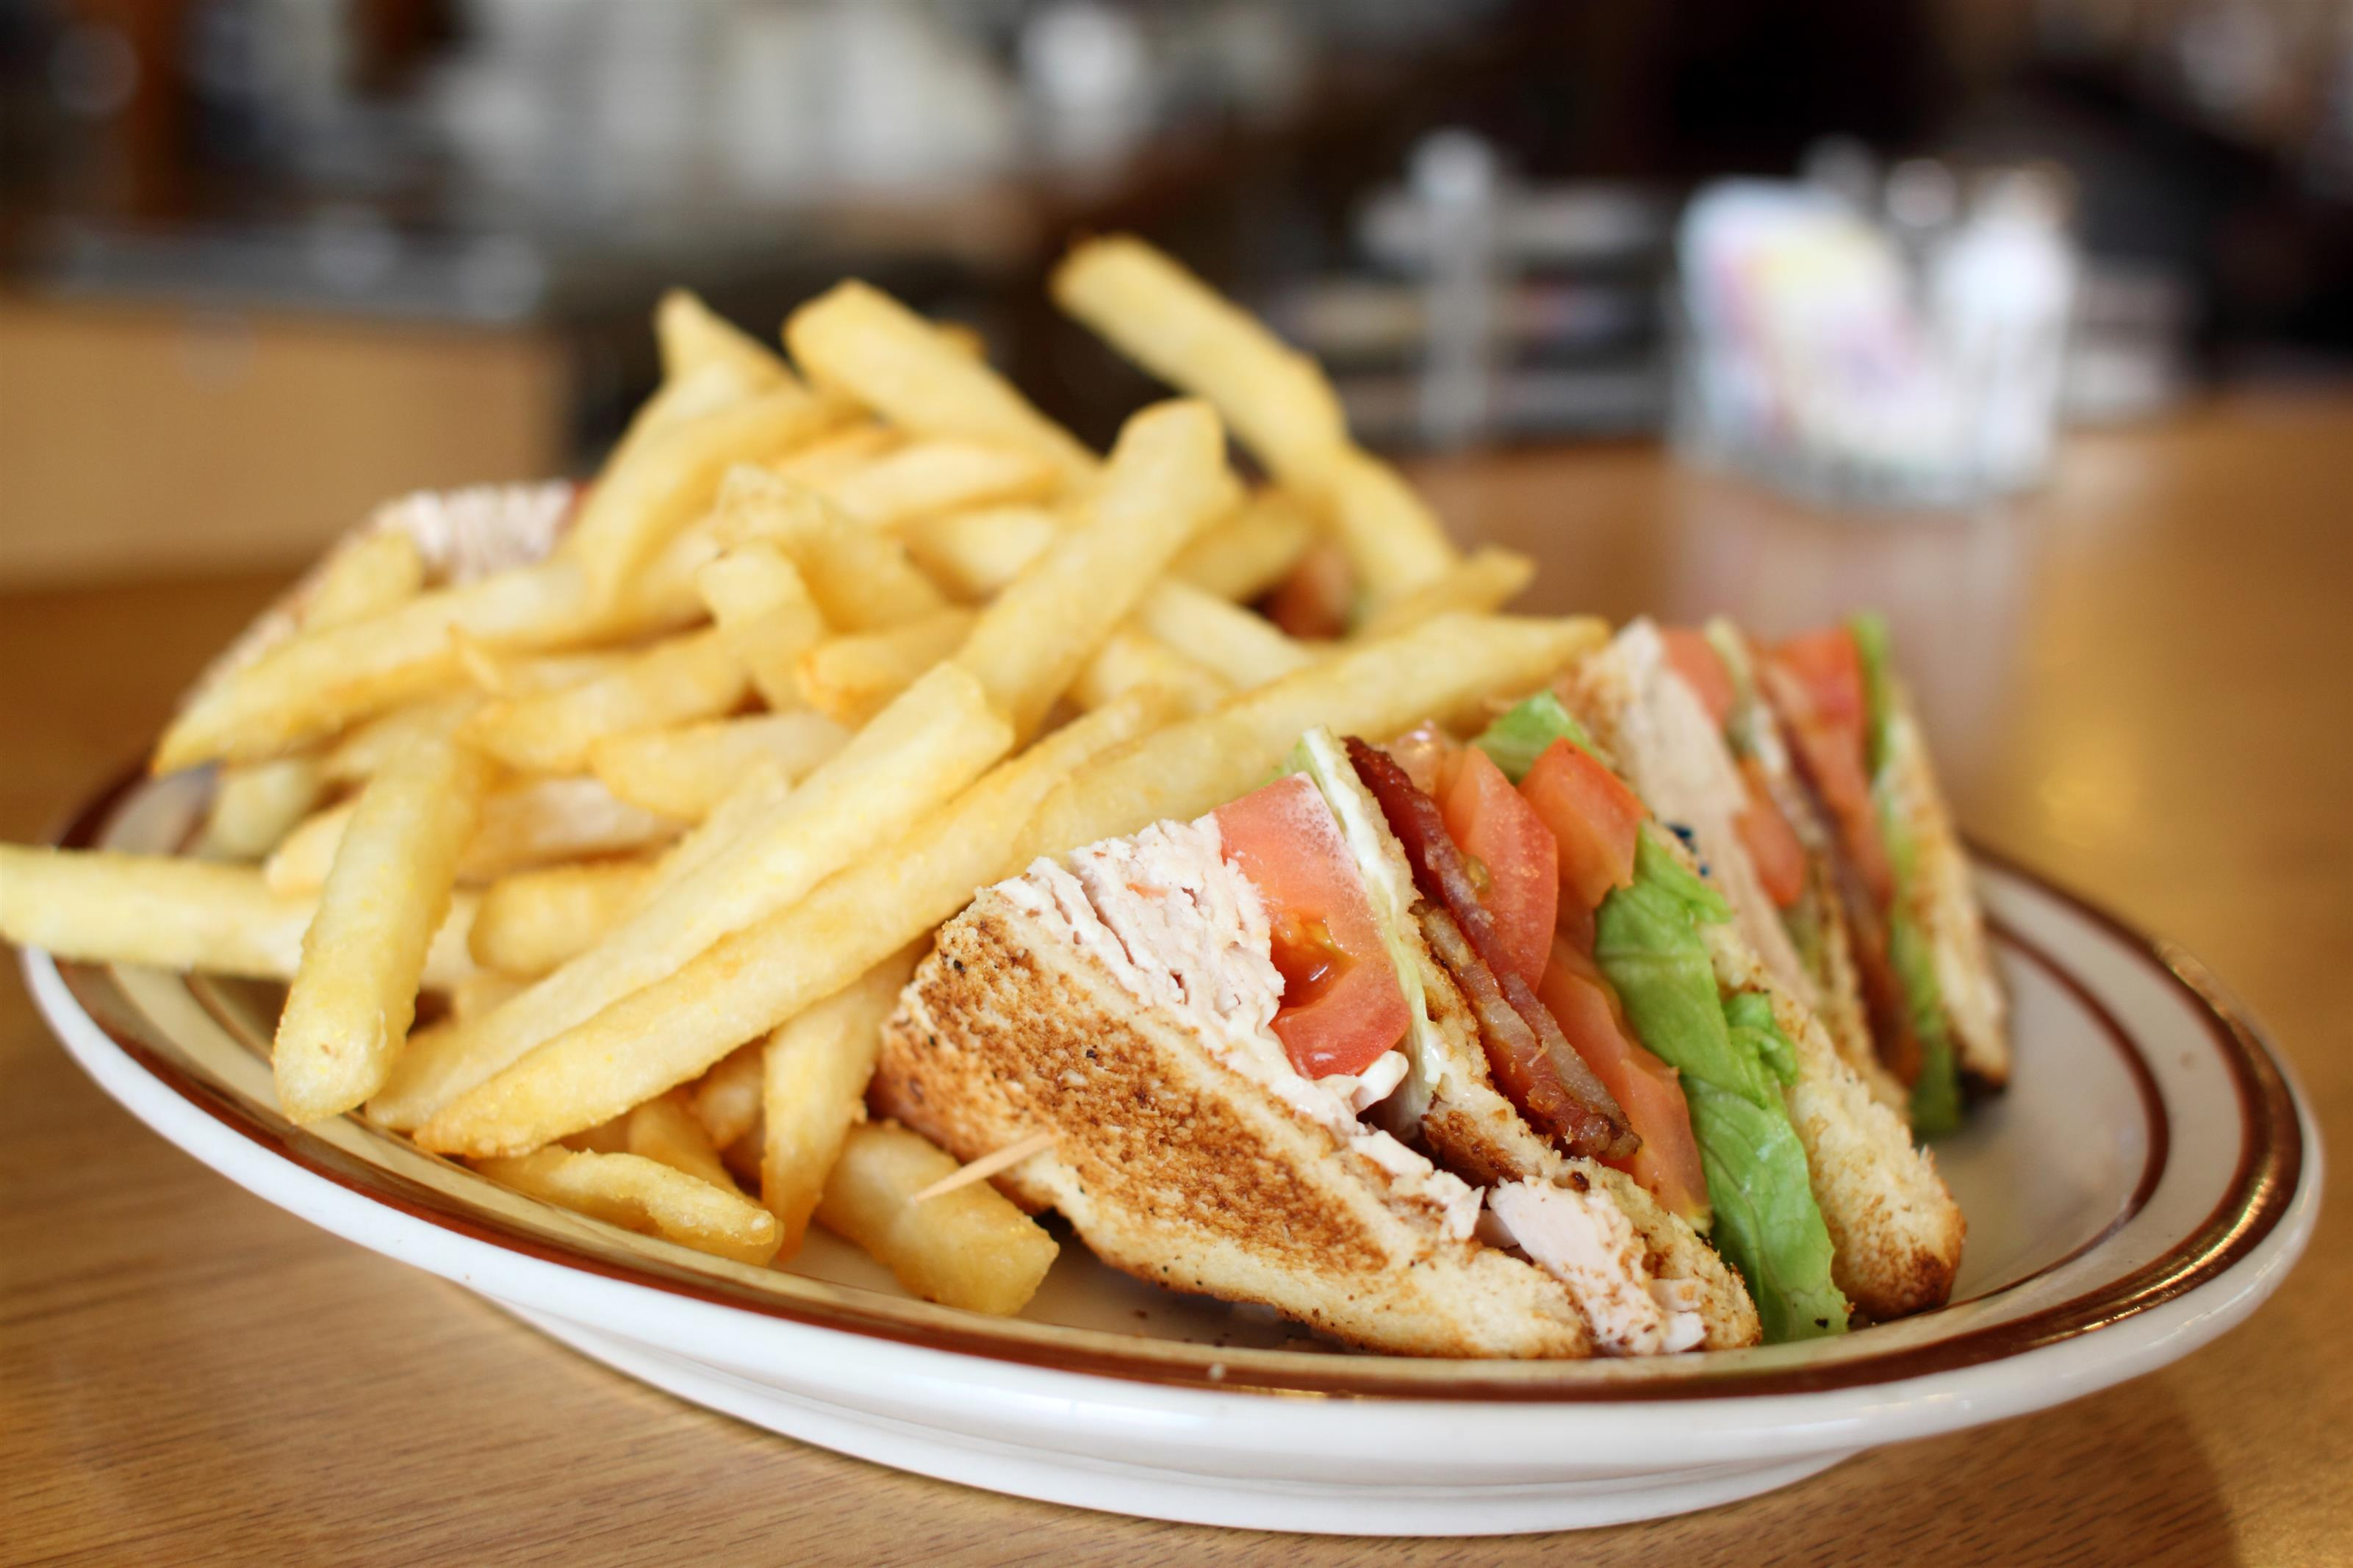 turkey sandwich with a side of french fries